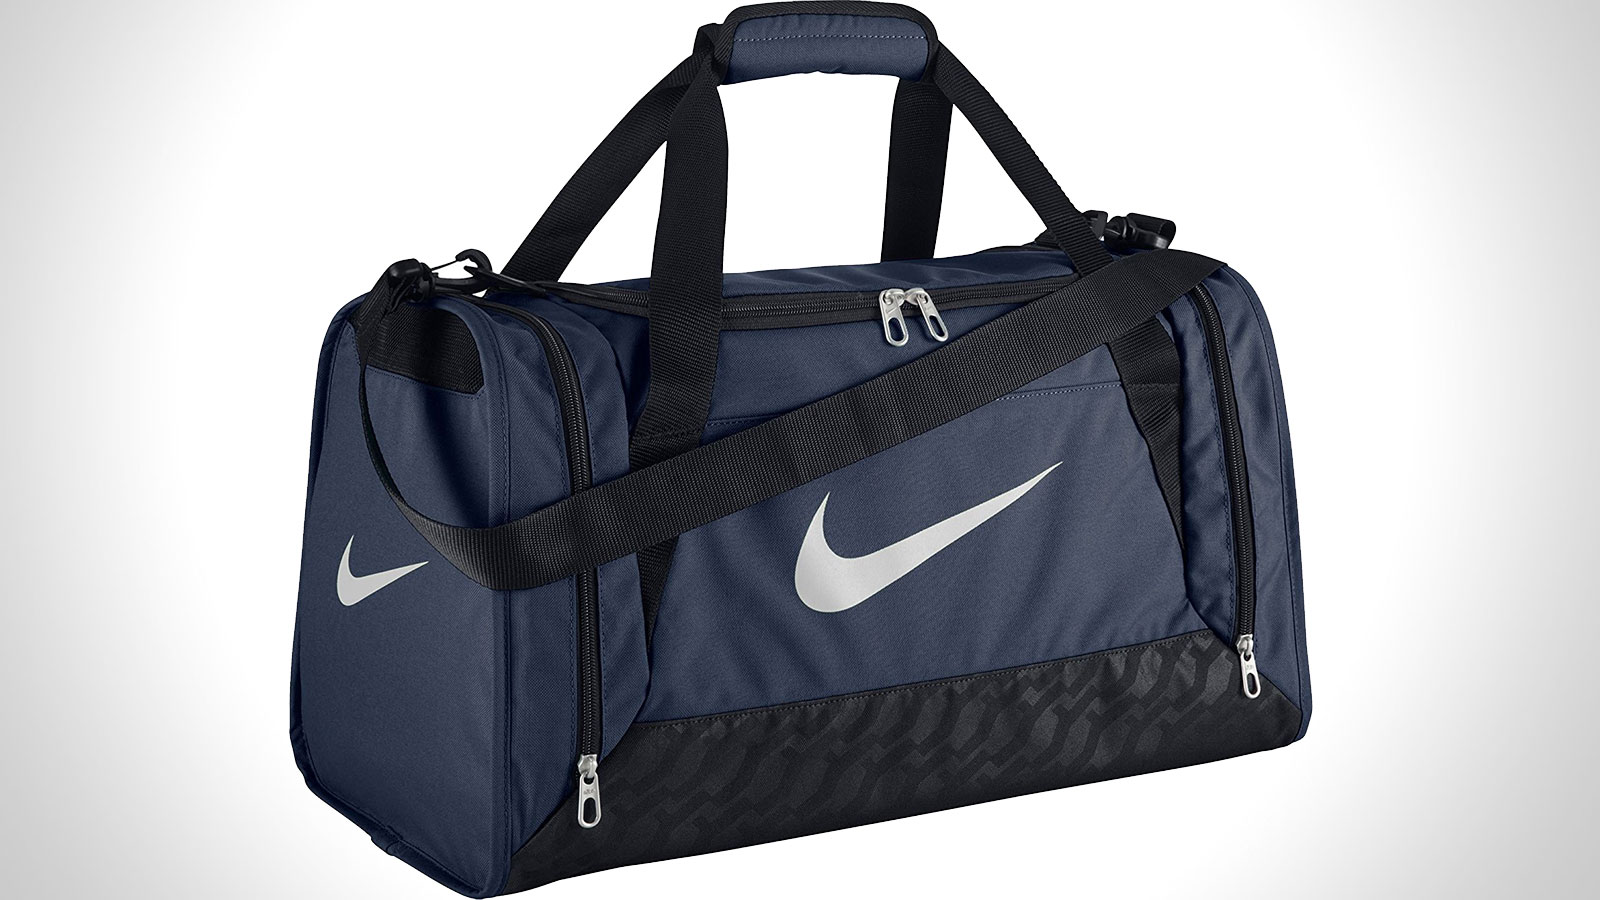 Old Nike Duffel Bag  0196a0d4a75c2